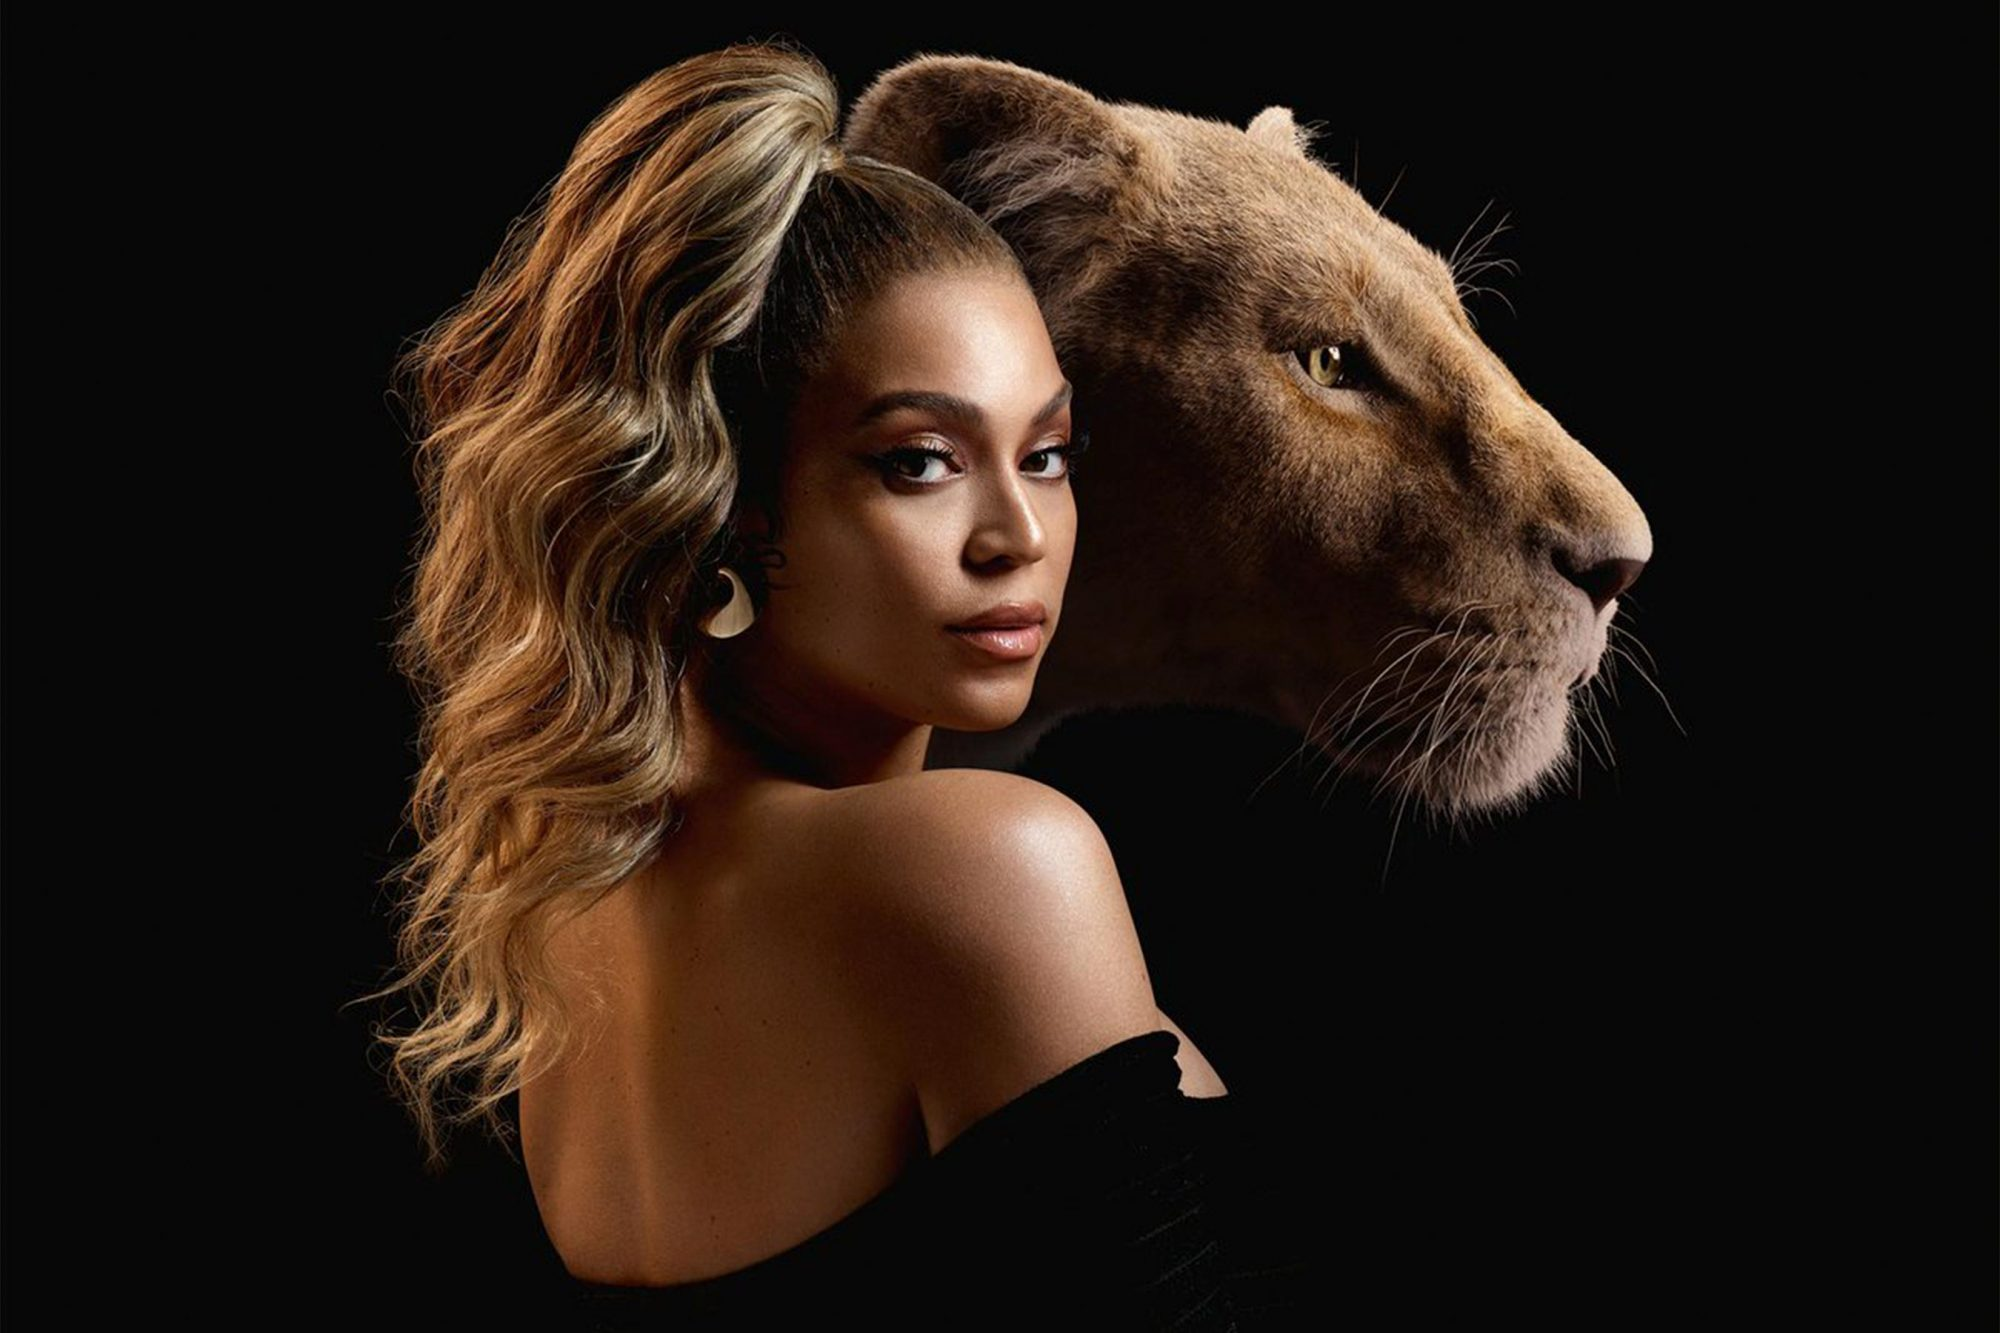 THE LION KING - (L-R) Nala and Beyoncé Knowles-Carter. Photo by Kwaku Alston. © 2019 Disney Enterprises, Inc. All Rights Reserved. CR: Kwaku Alston/© 2019 Disney